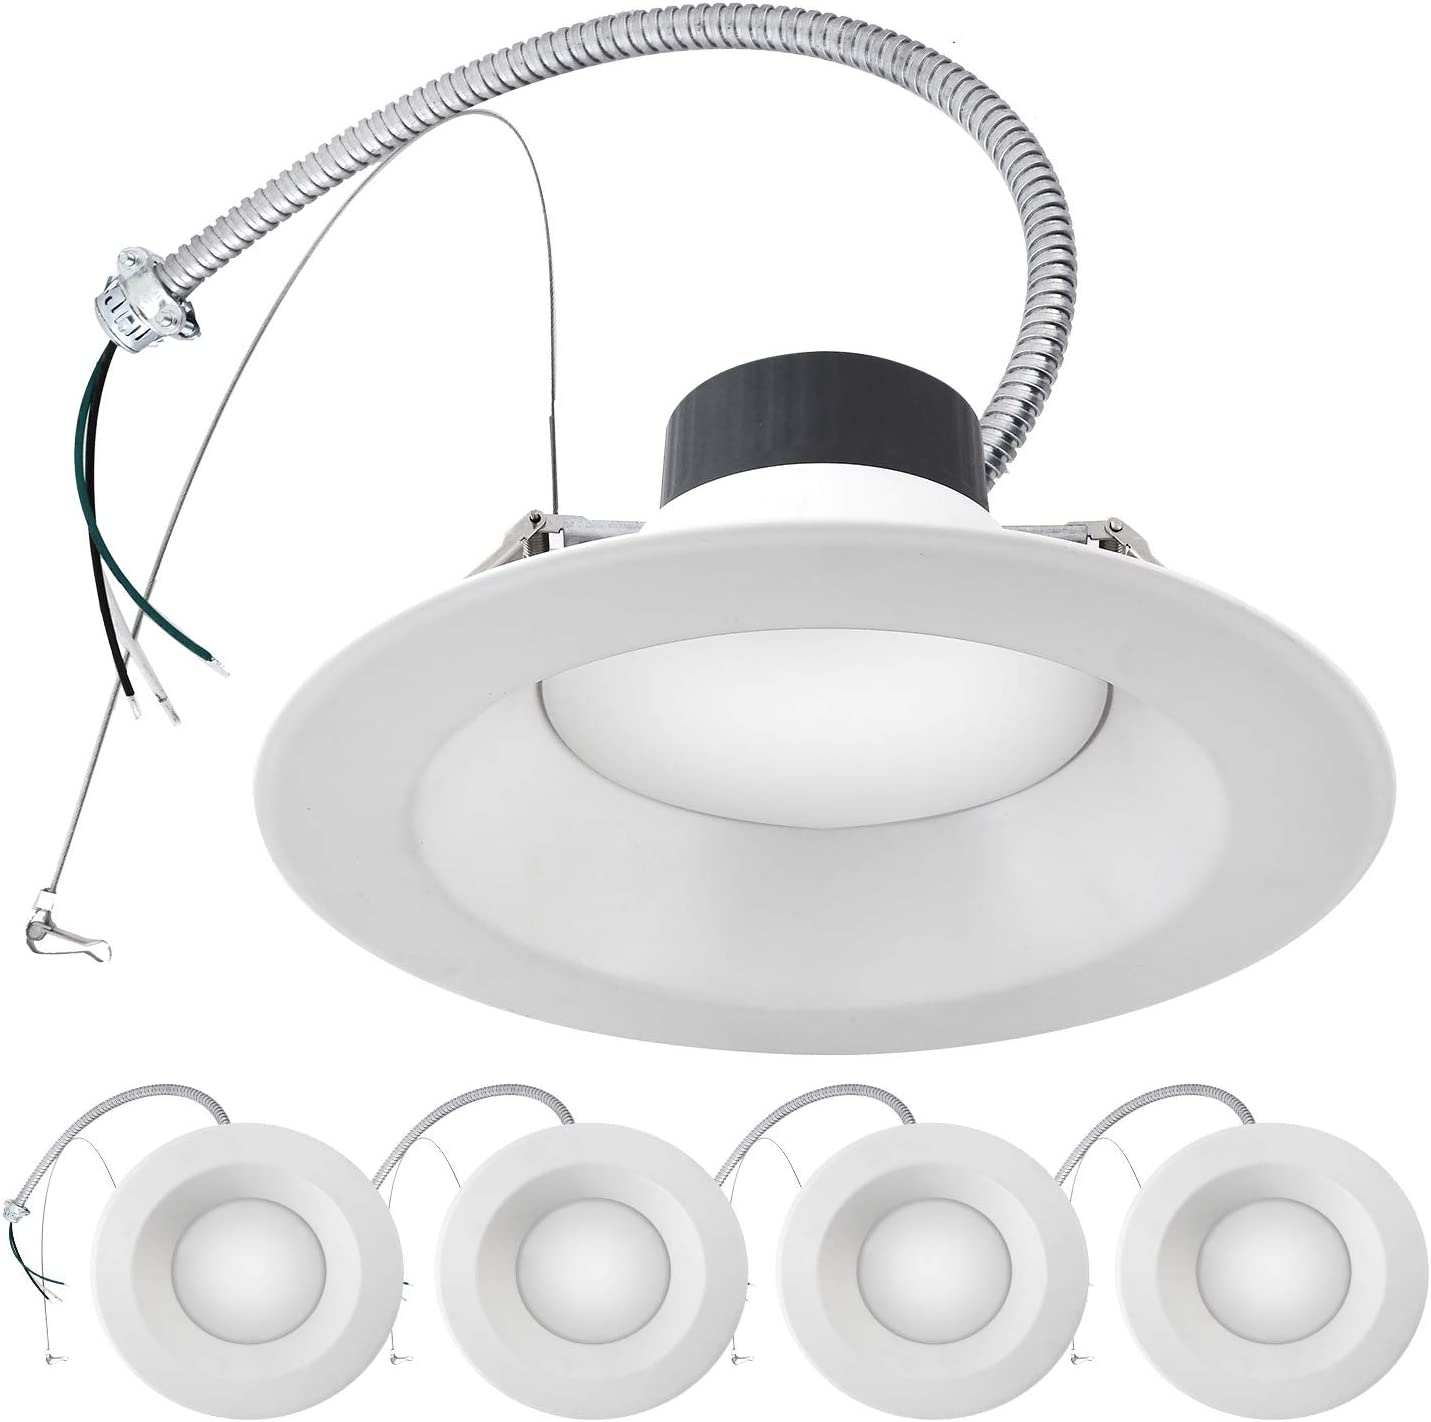 Amazon.com: ASD 8 Inch Commercial Downlight LED Recessed Lighting 12W 20W  30W Power Adjustable, CCT Adjustable 3000K 4000K 5000K 100-277V, LED  Ceiling Light - Intertek LED Light - ETL & Energy Star -Amazon.com